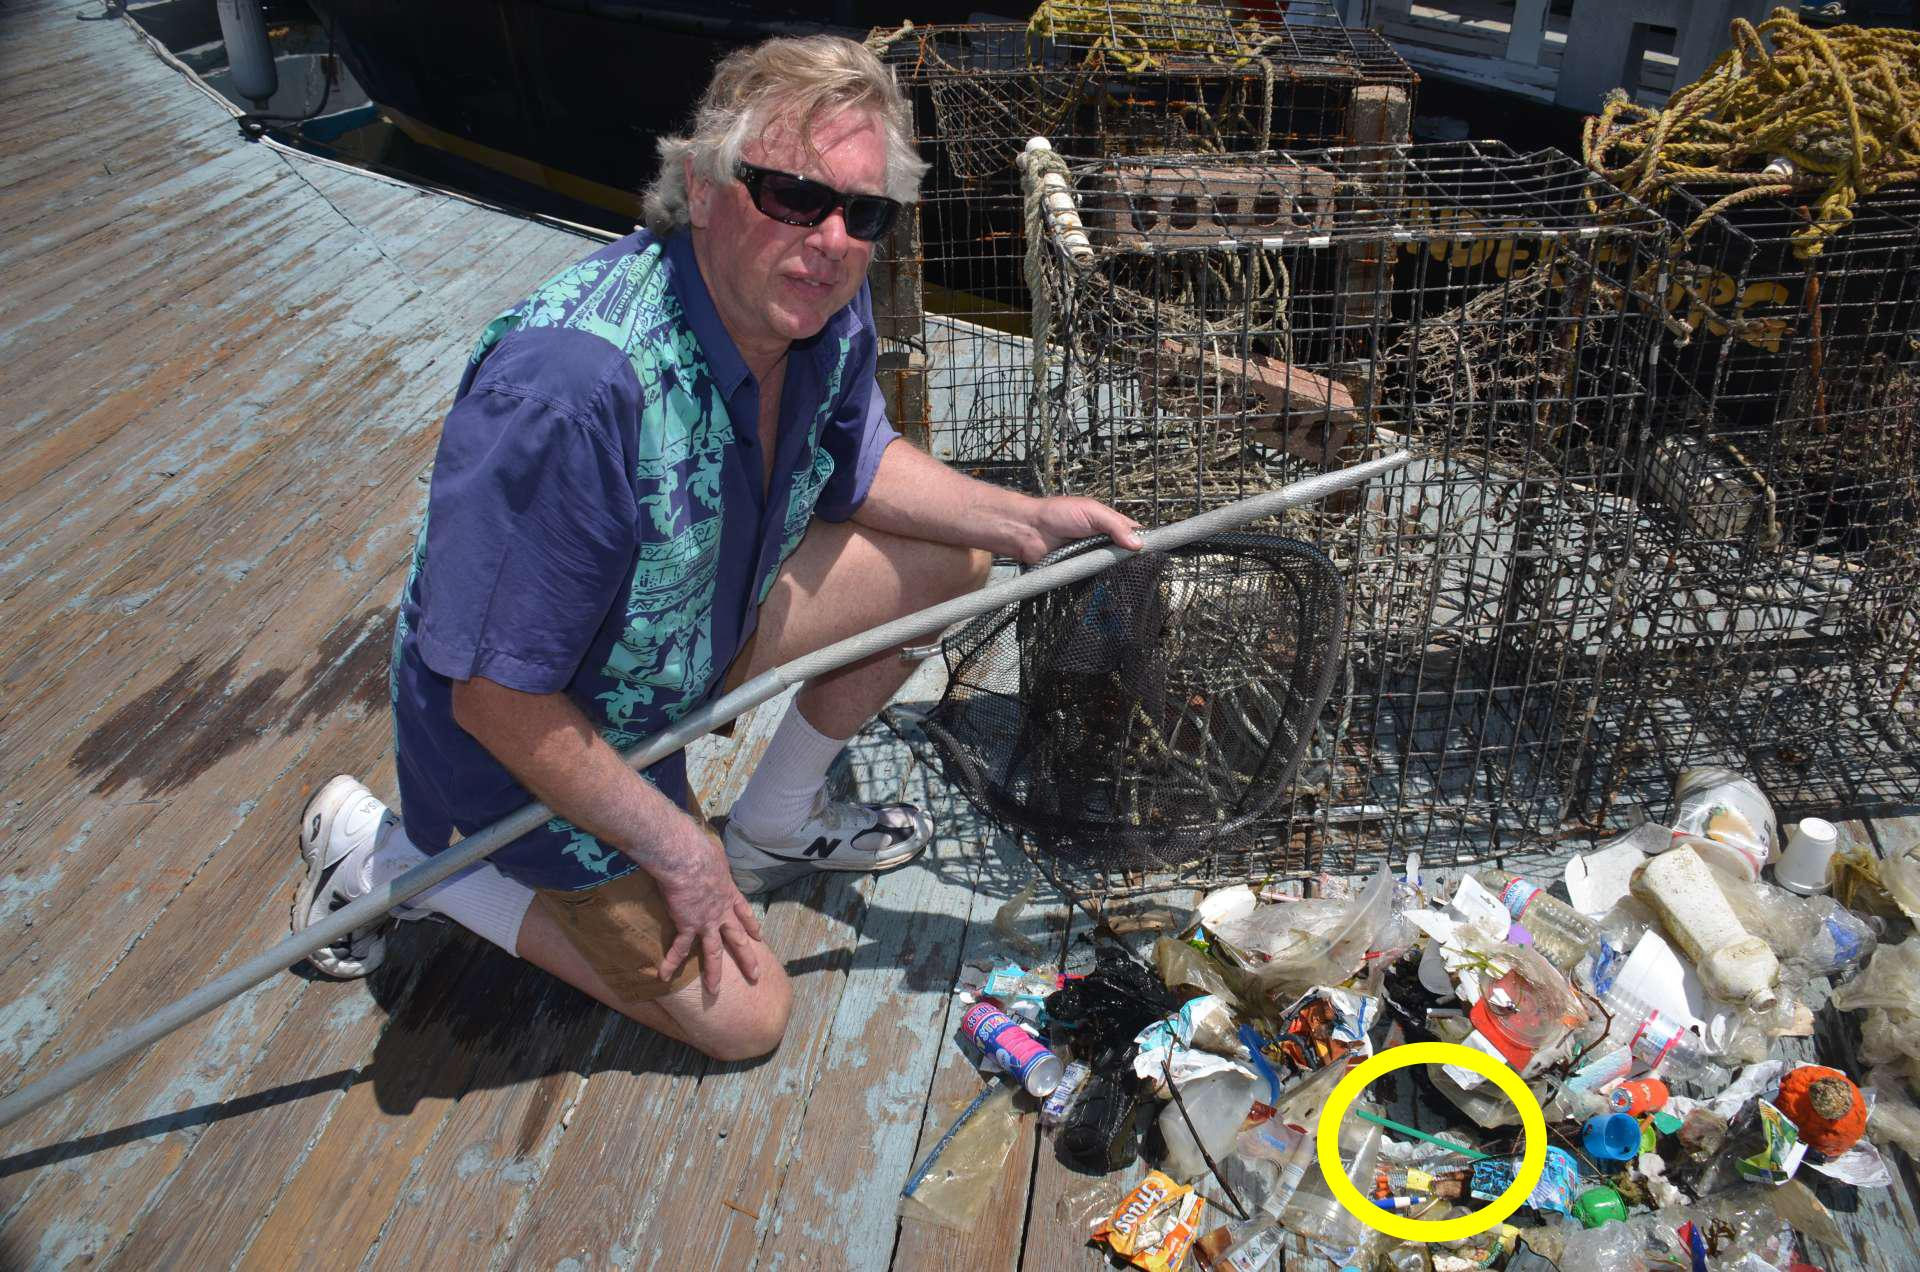 Ocean Defender Kurt Lieber on dock with debris hauled in, including plastic straw (see circle)